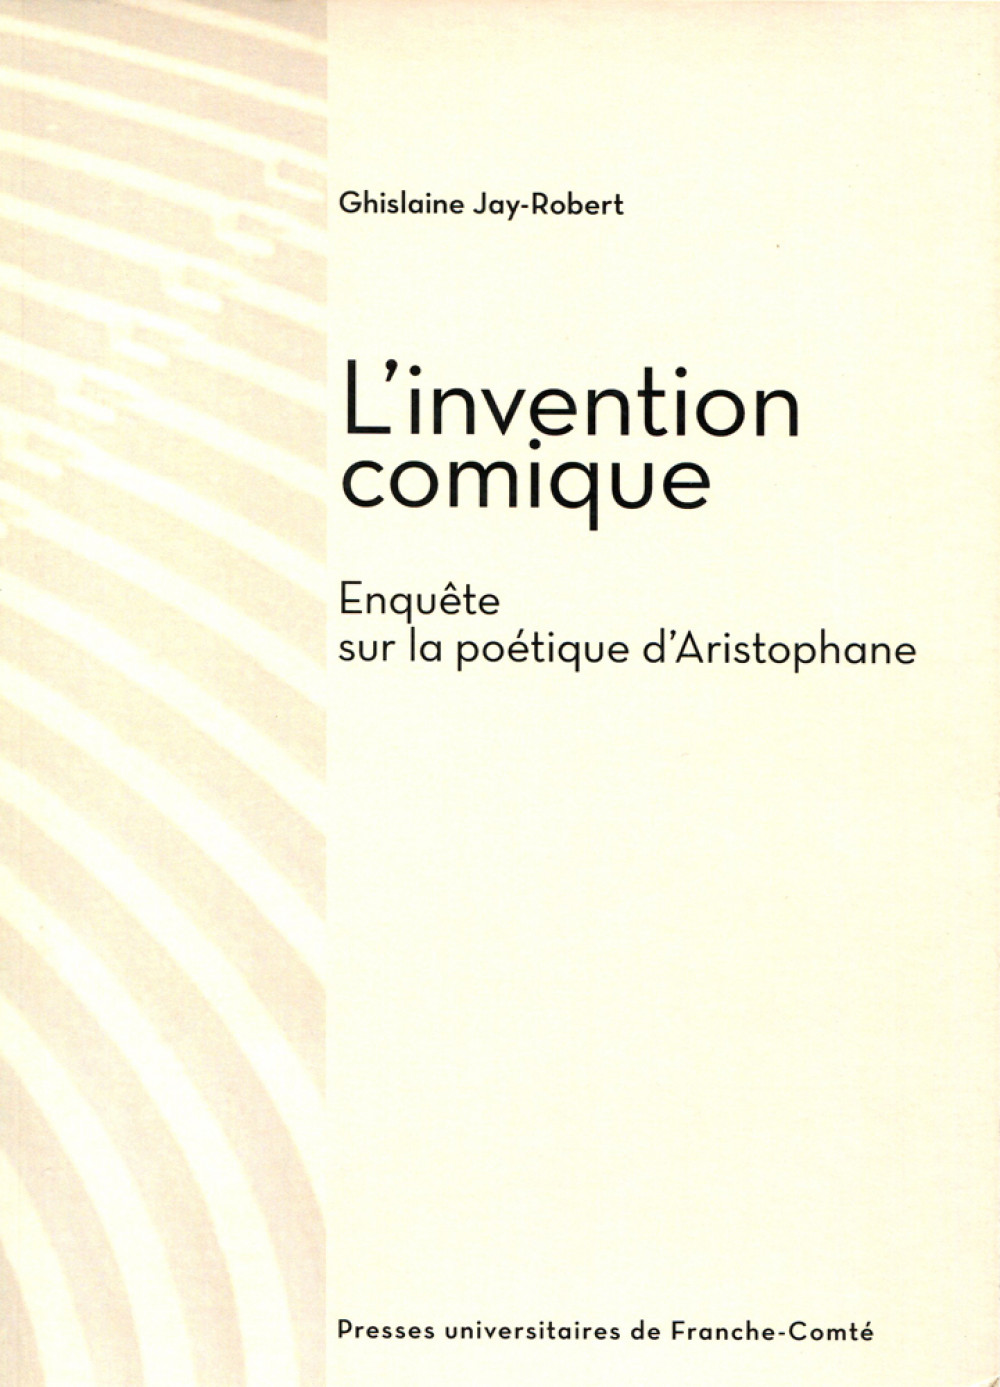 L'invention comique